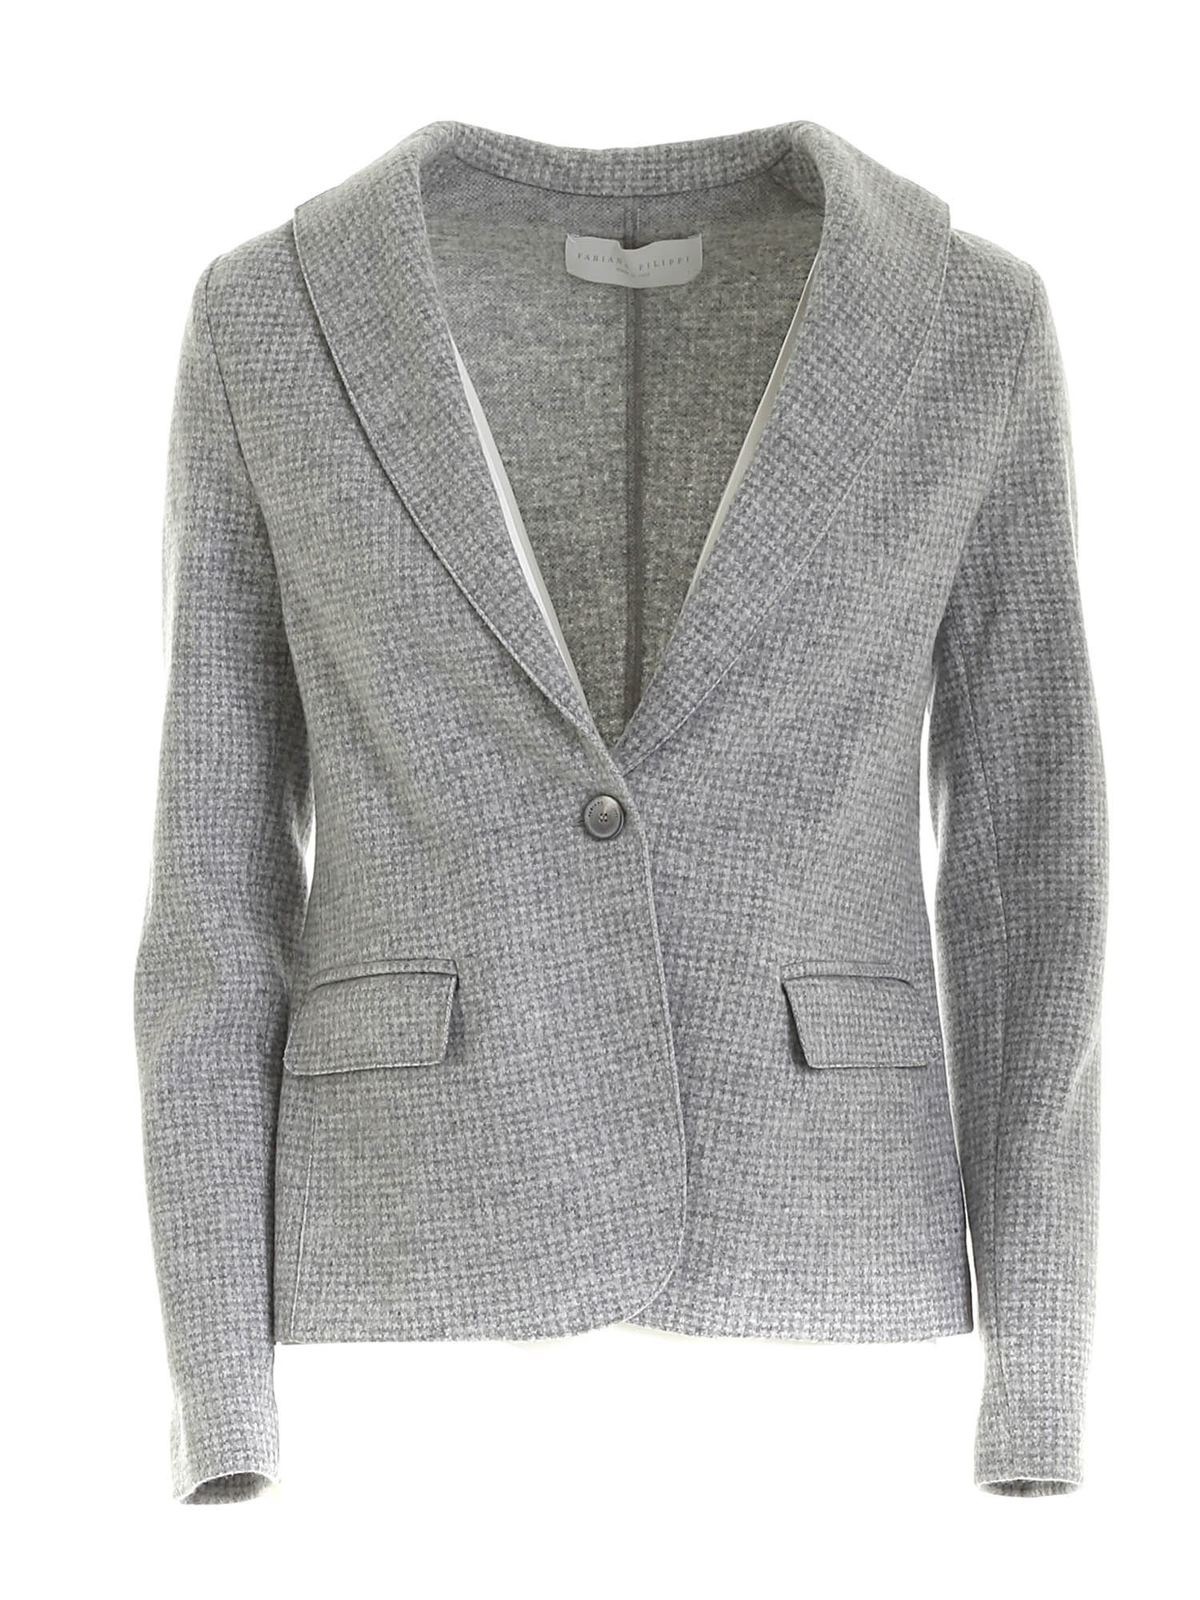 Fabiana Filippi SINGLE-BREASTED JACKET IN MELANGE GREY